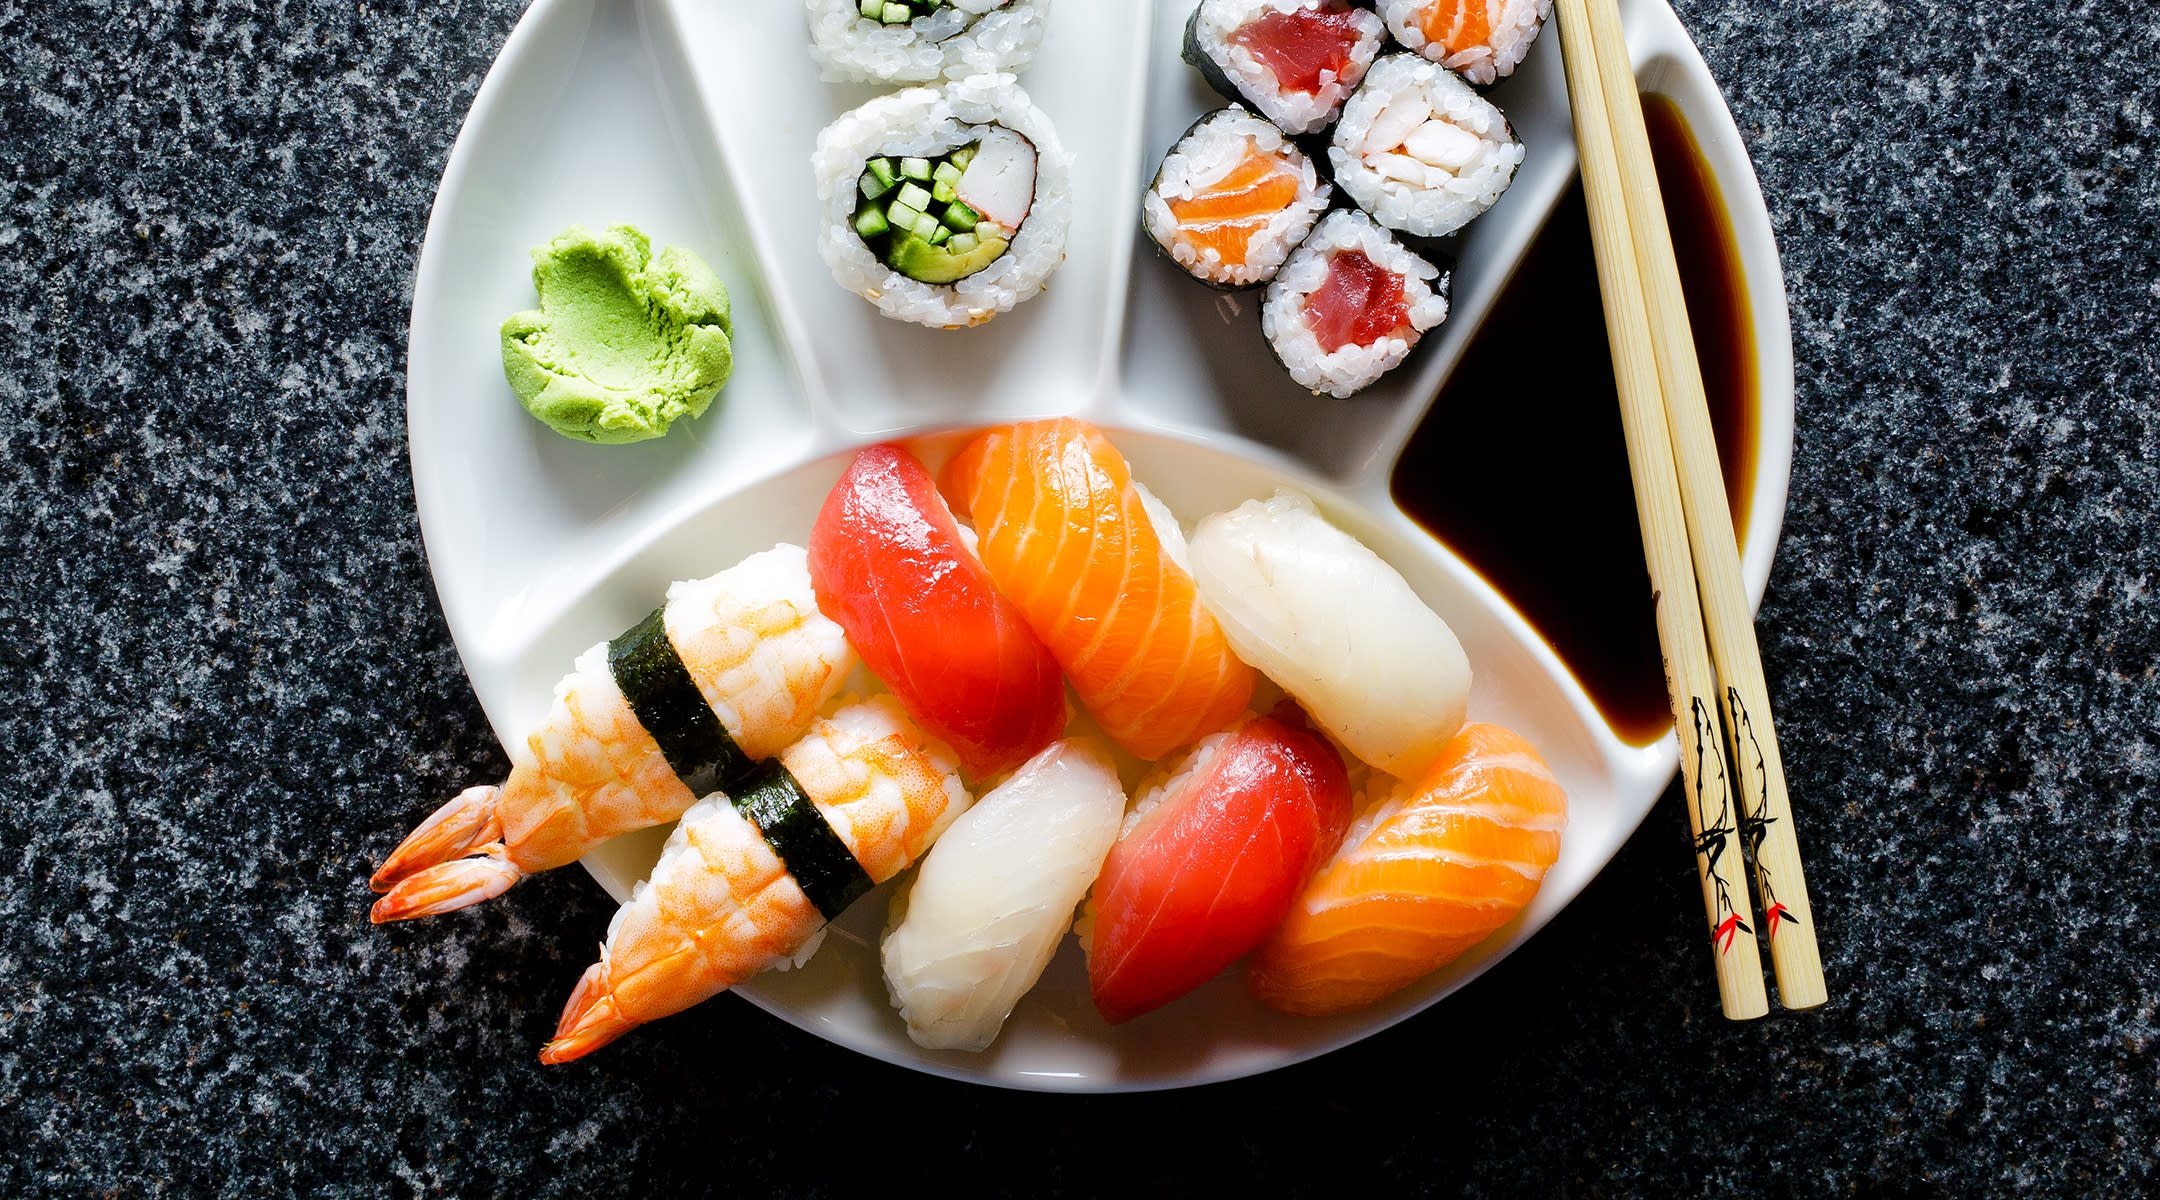 Is Eating Sushi While Pregnant Safe